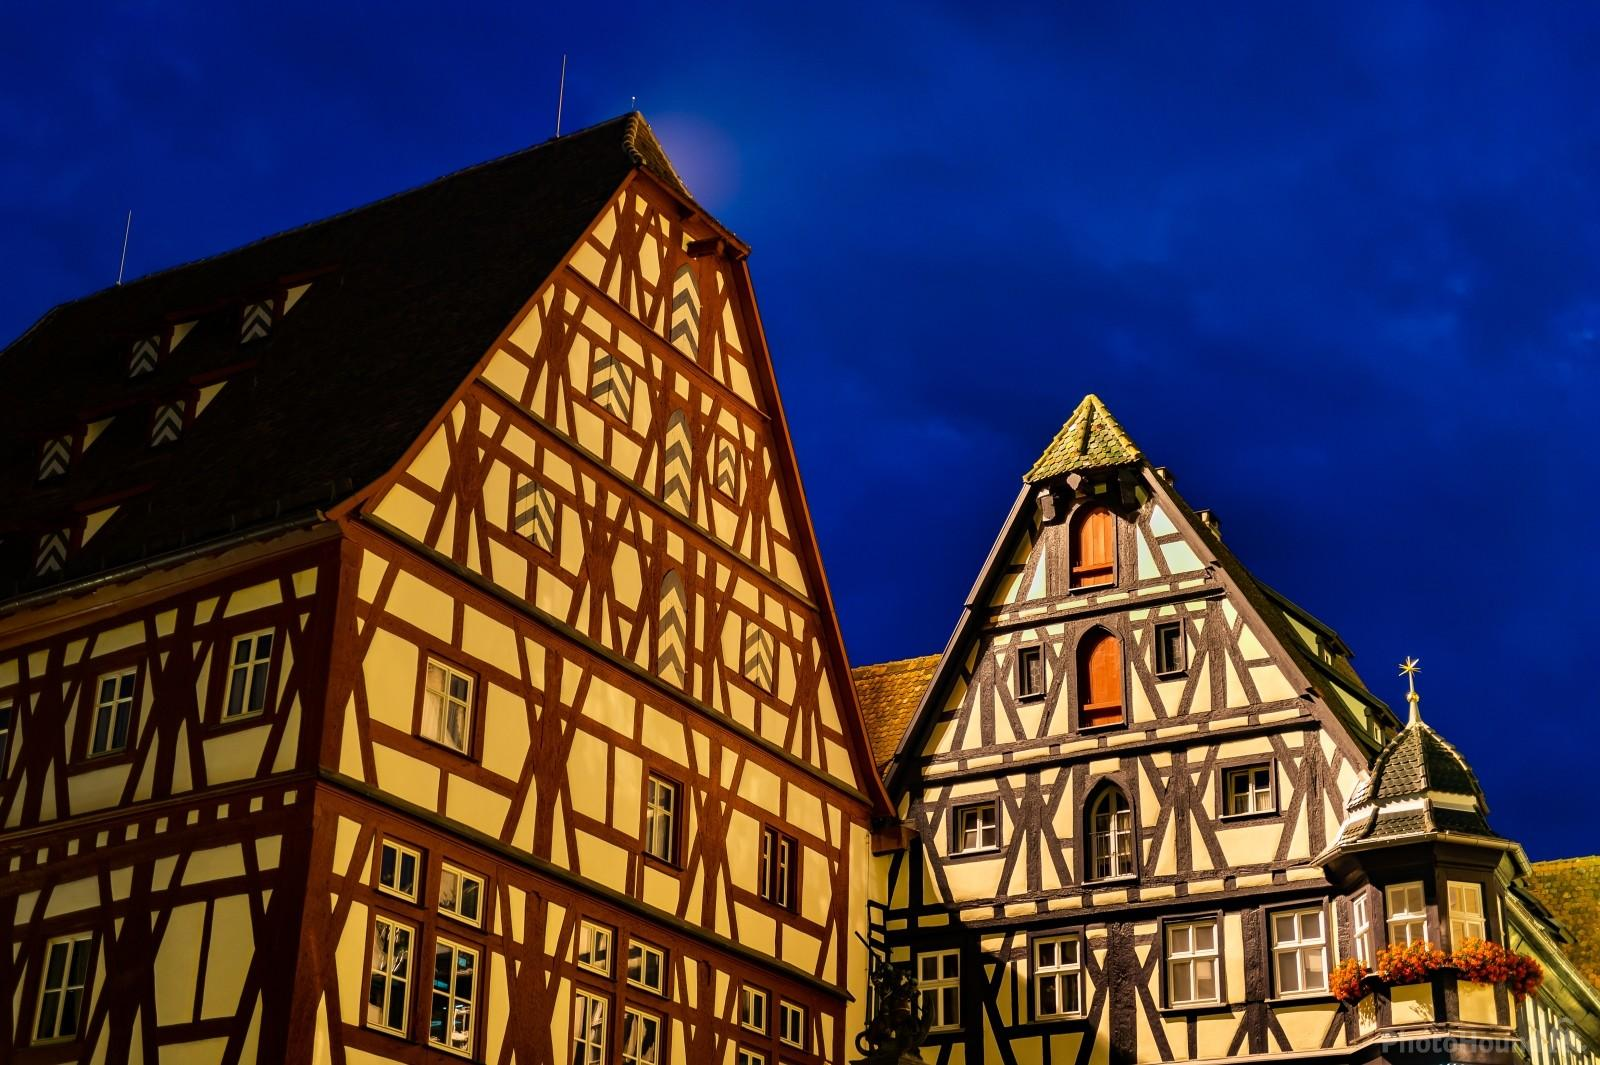 Detail of the typical half-timbered houses in Rothenburg ob der Tauber